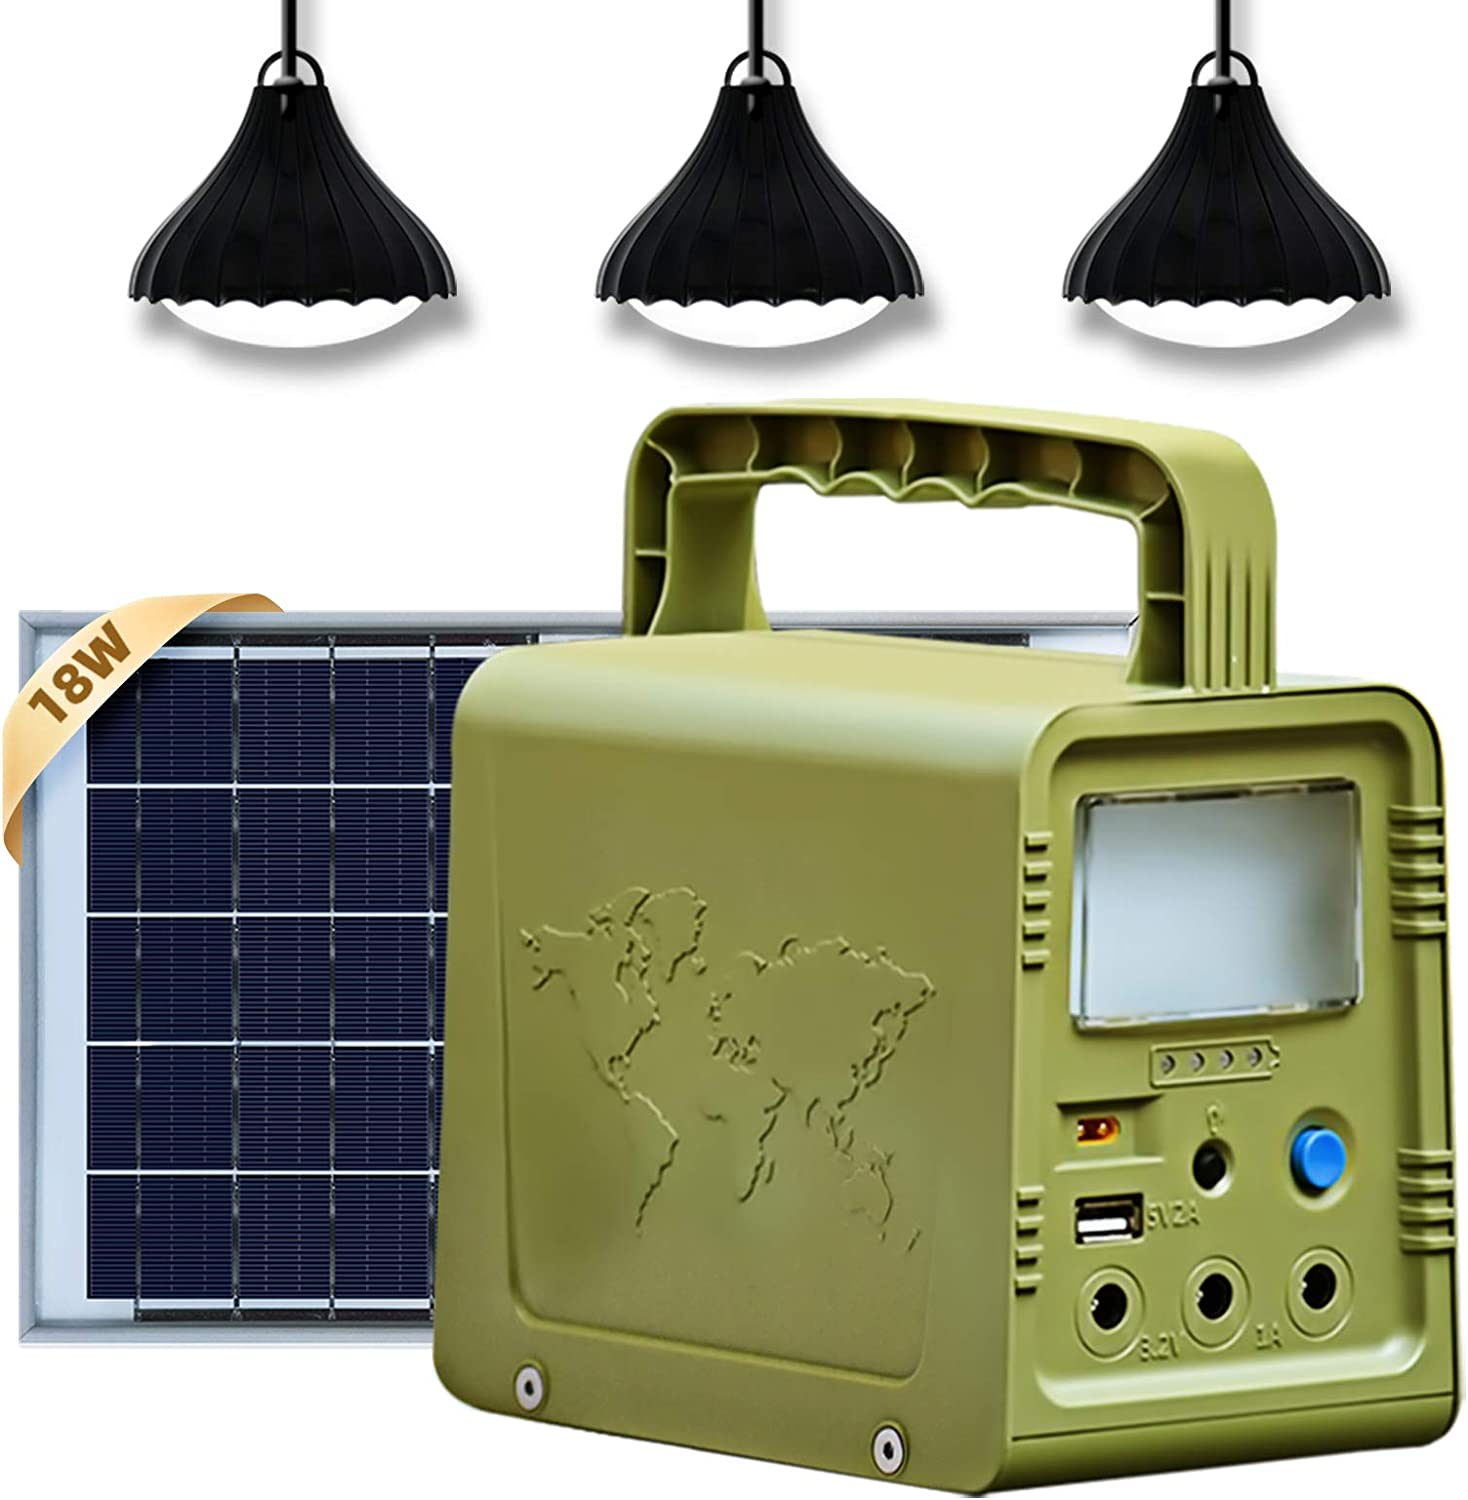 Ultimate Guide To The Best Camping Solar Panels Australia 2021 - Eco Worthy Portable Solar Generator